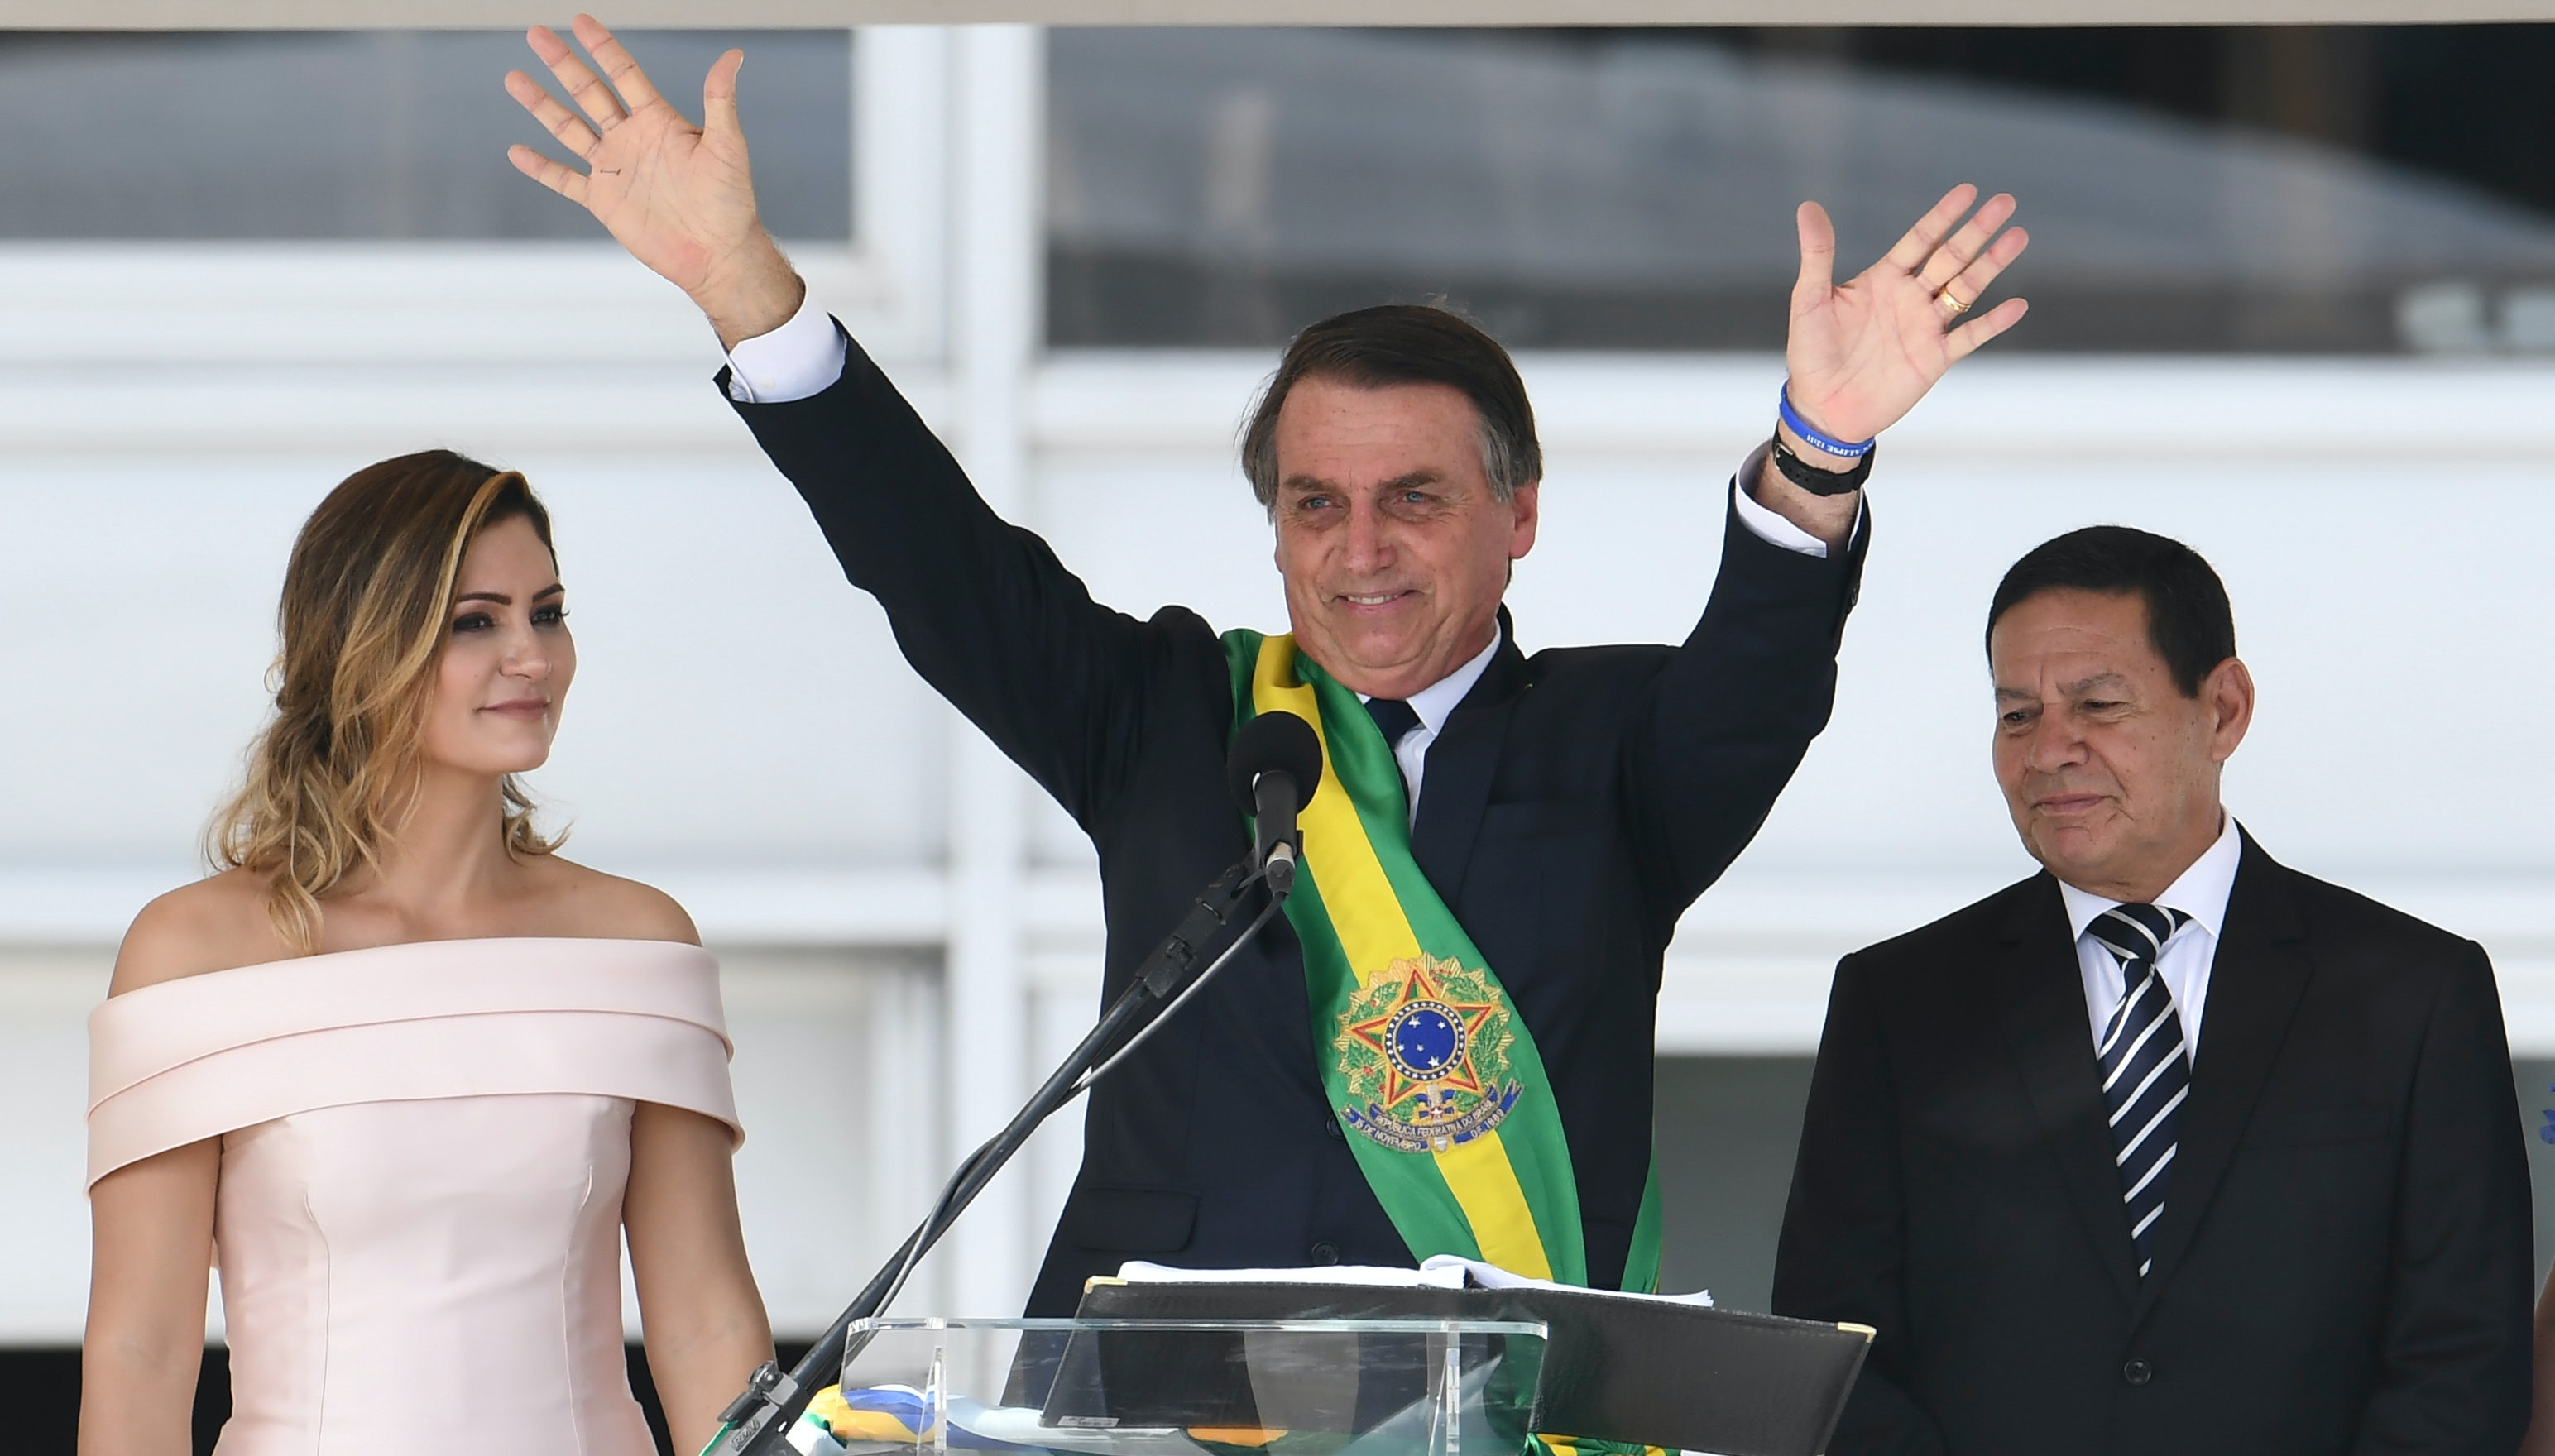 Jair Bolsonaro waves to supporters flanked by First Lady Michelle Bolsonaro (L) and Brazil's new Vice-President Hamilton Mourao, during their inauguration ceremony | Source: Getty Images)